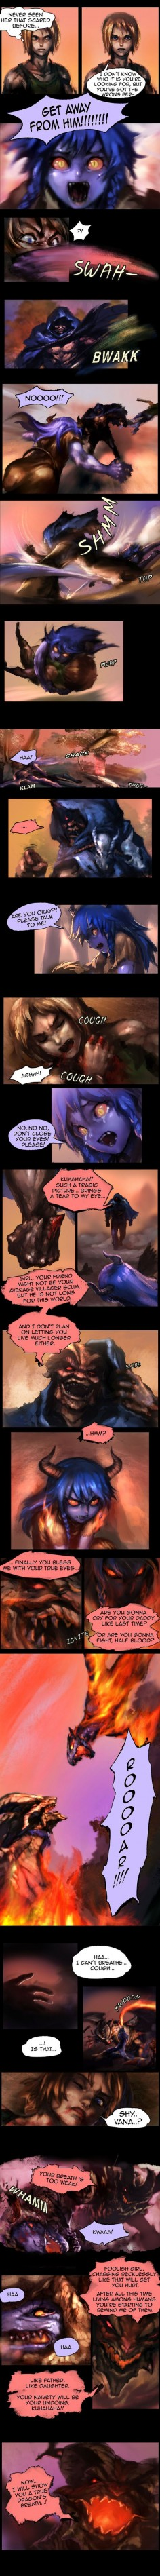 Shyvana~ The Half Dragon Tale. Page 5/6 by ptcrow